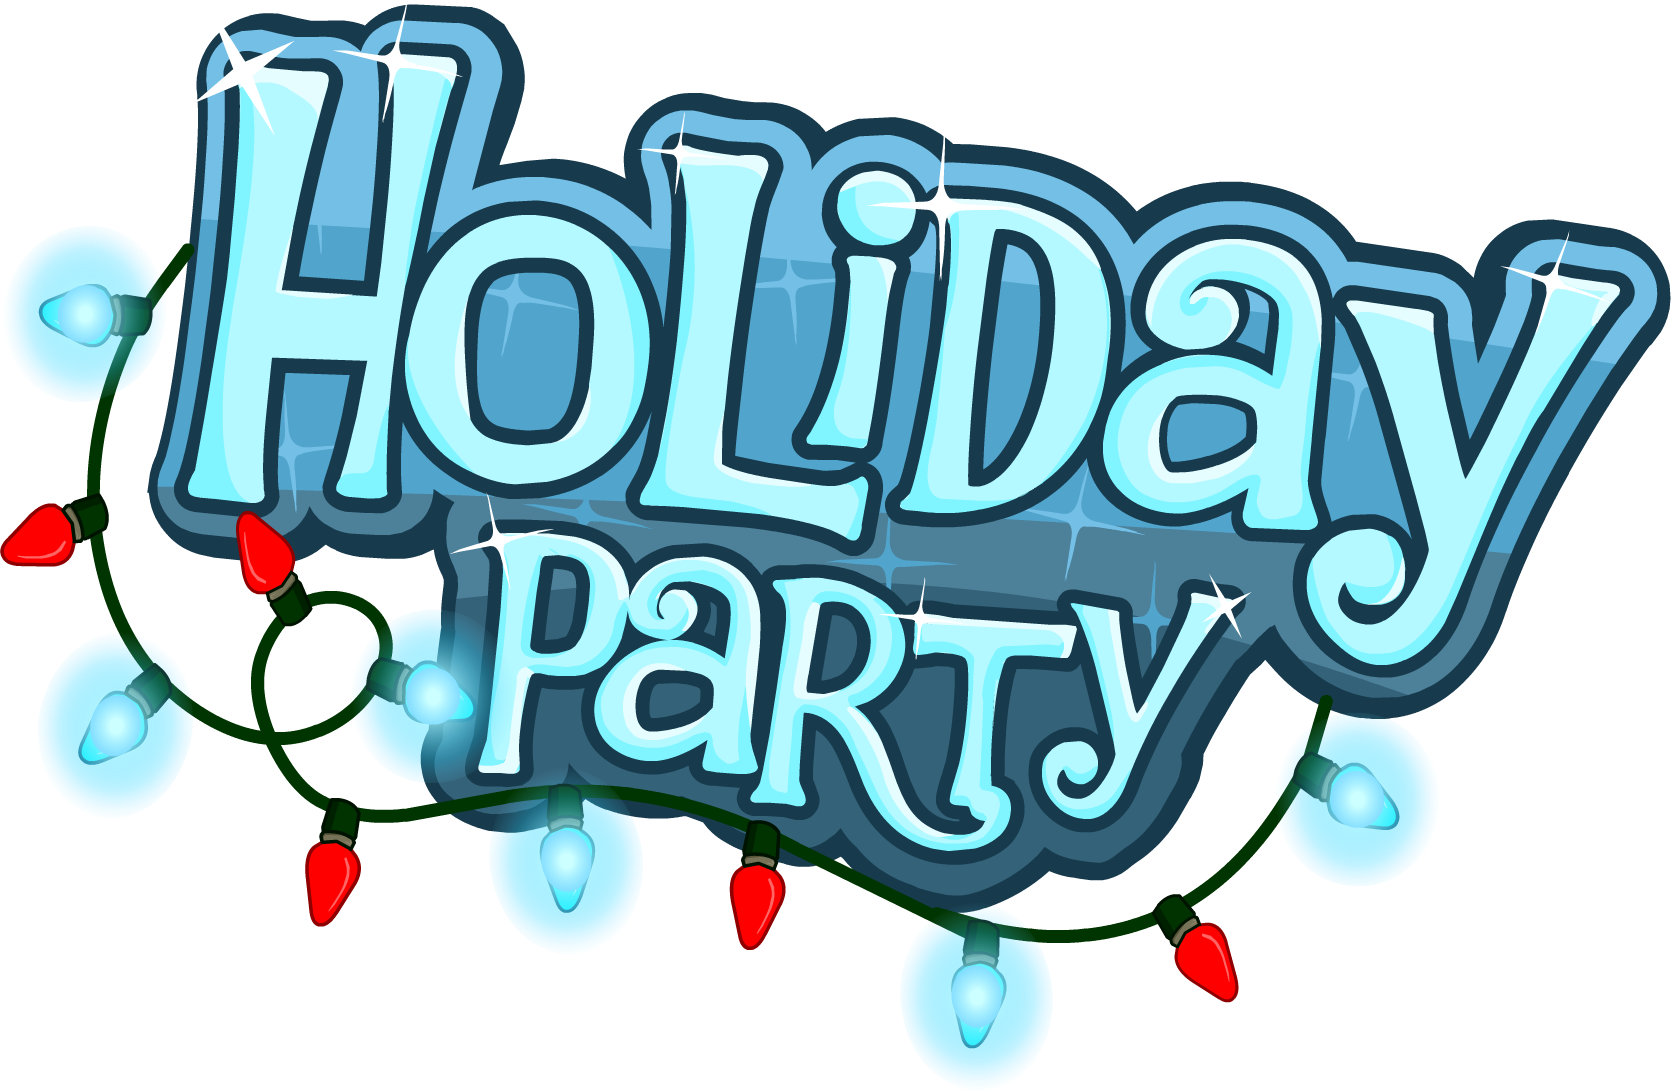 htmatexas 2nd annual htma holiday party rh htmatexas org winter holiday party clipart holiday party invitation clipart